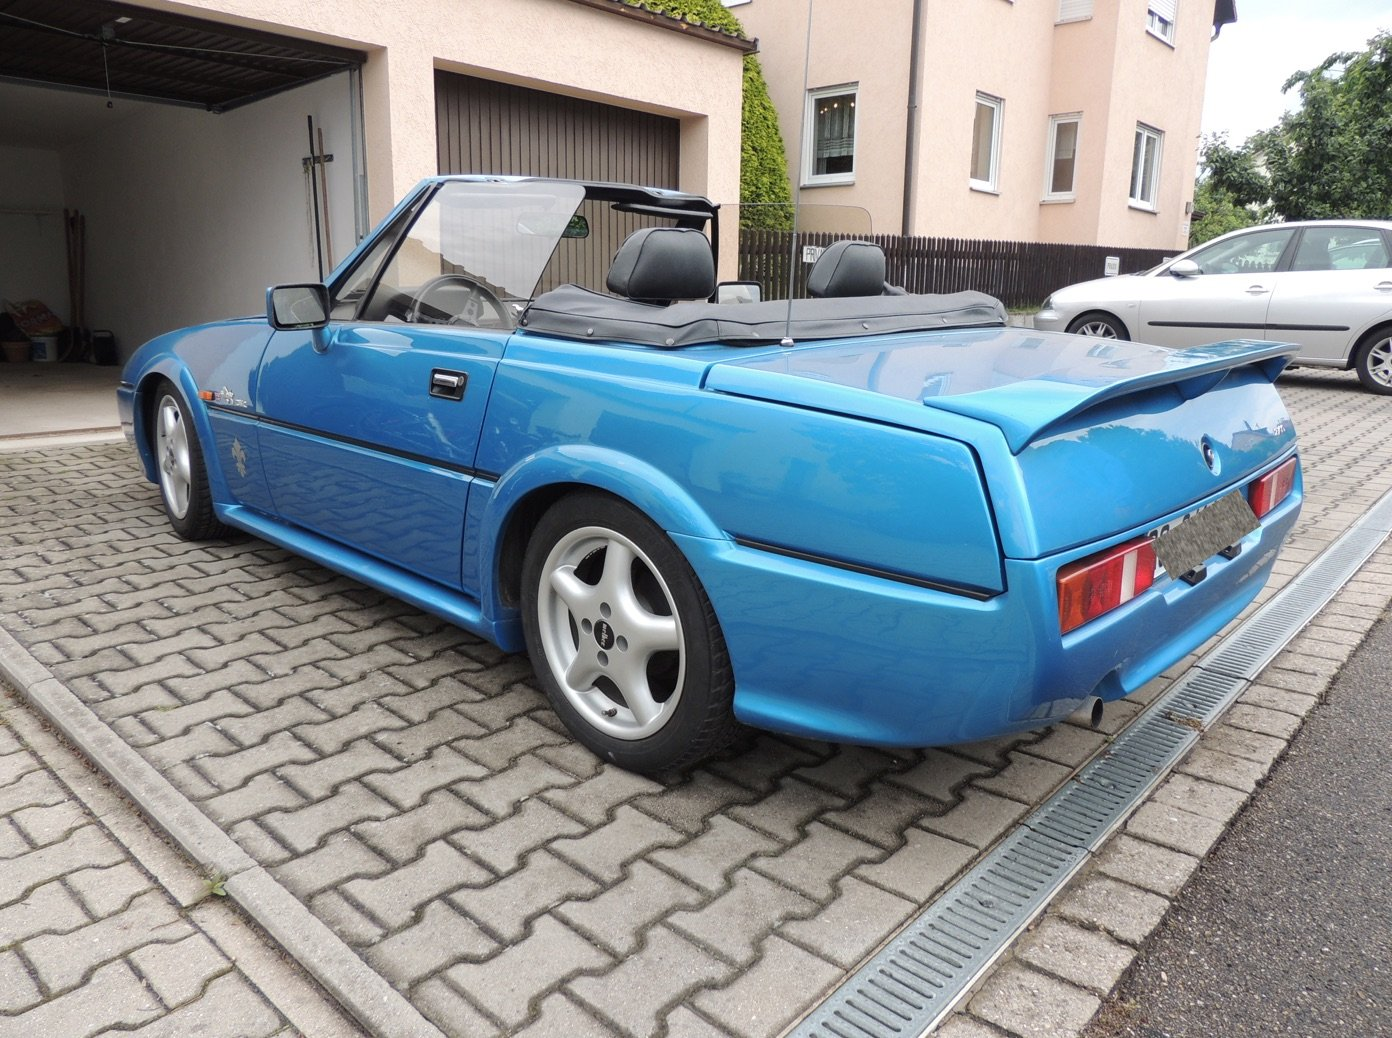 1998 Reliant Scimitar Sabre LHD For Sale (picture 2 of 6)